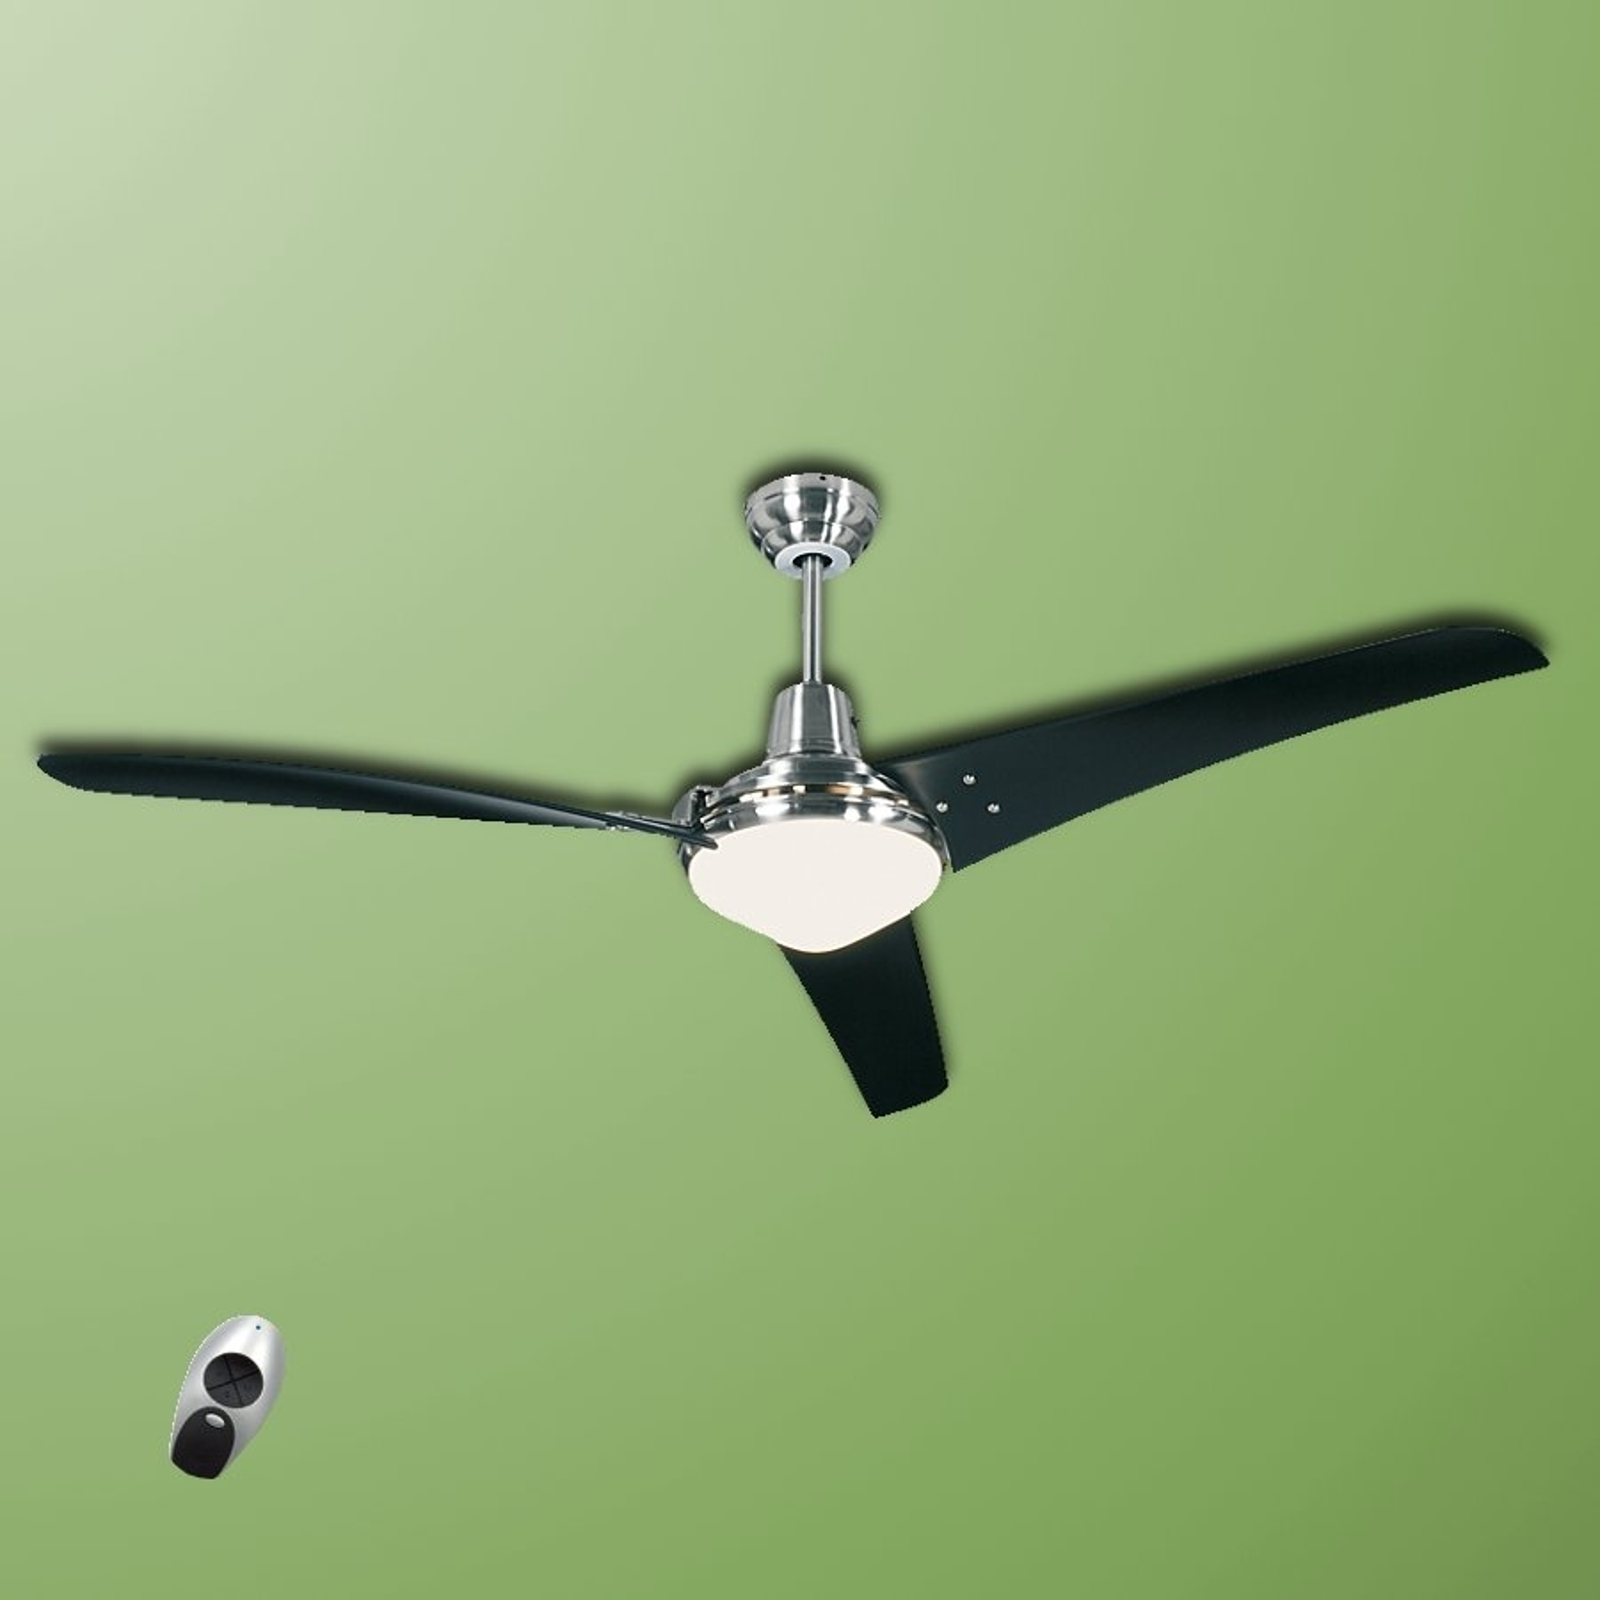 Timeless ceiling fan Mirage_2015009_1